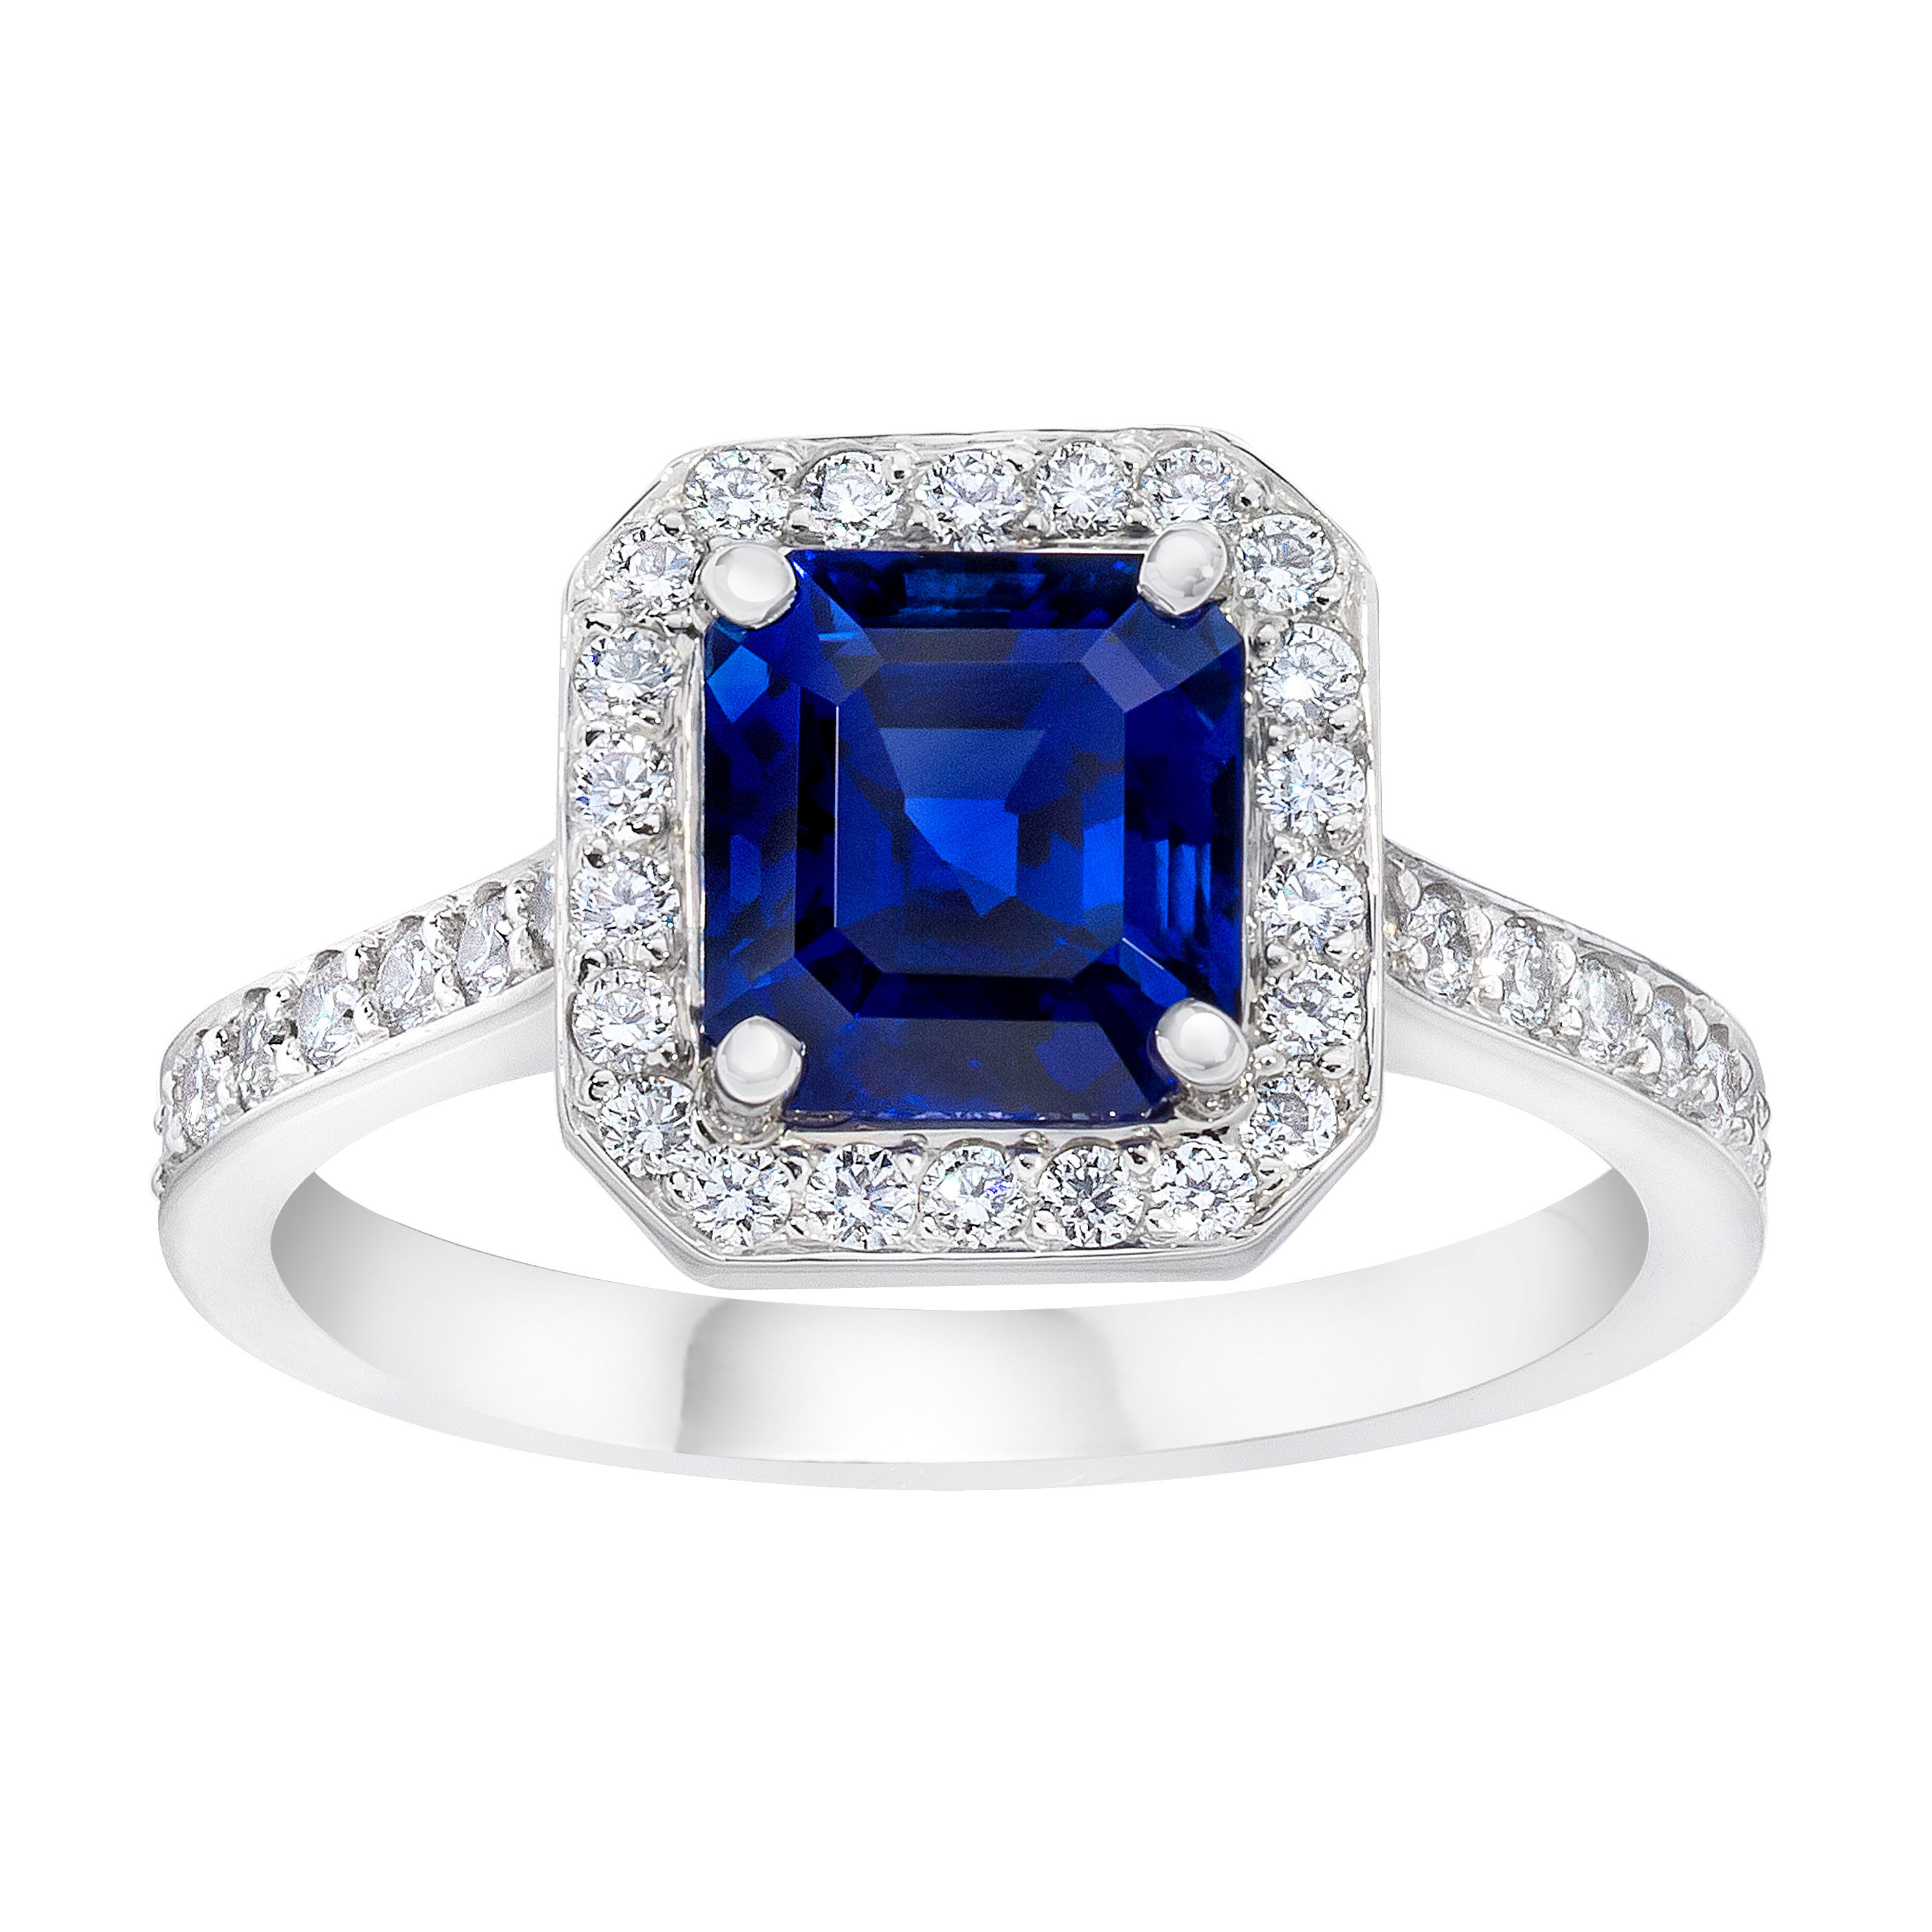 Sapphire Halo Ring – Rings – Fine Jewelry With Regard To Most Up To Date Sparkling Square Halo Rings (View 11 of 25)